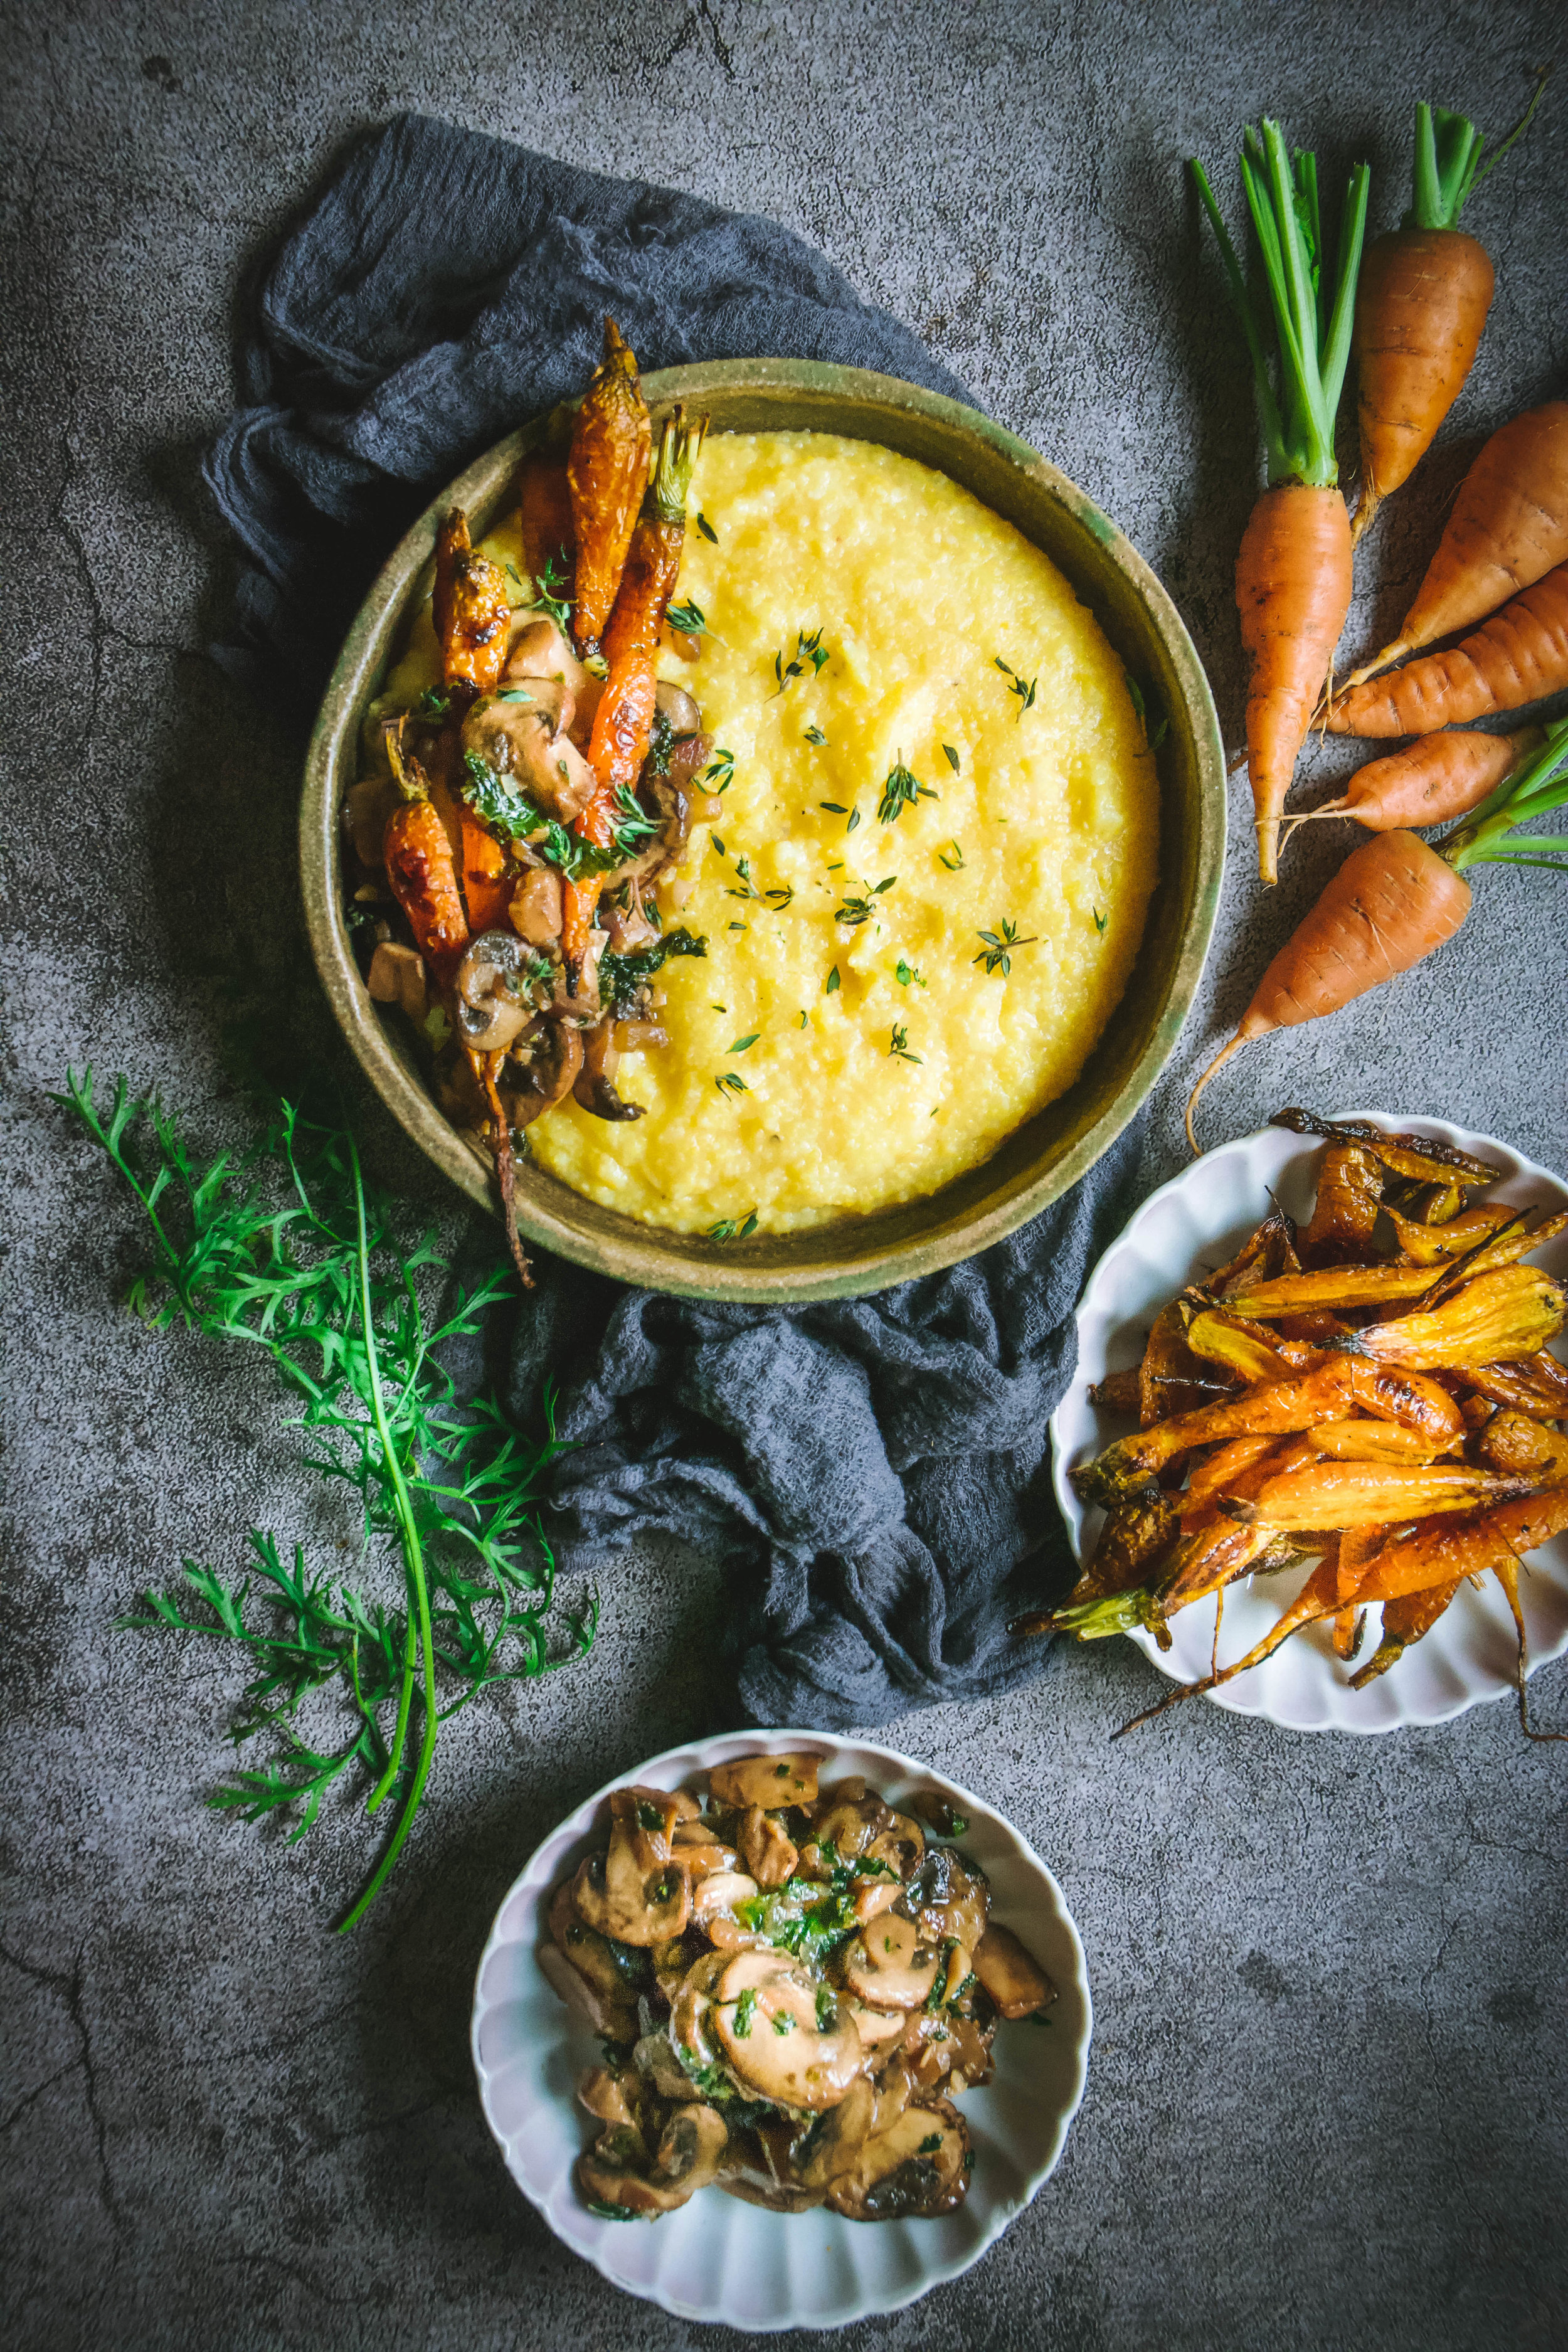 polenta with mushrooms, kale and roasted carrots